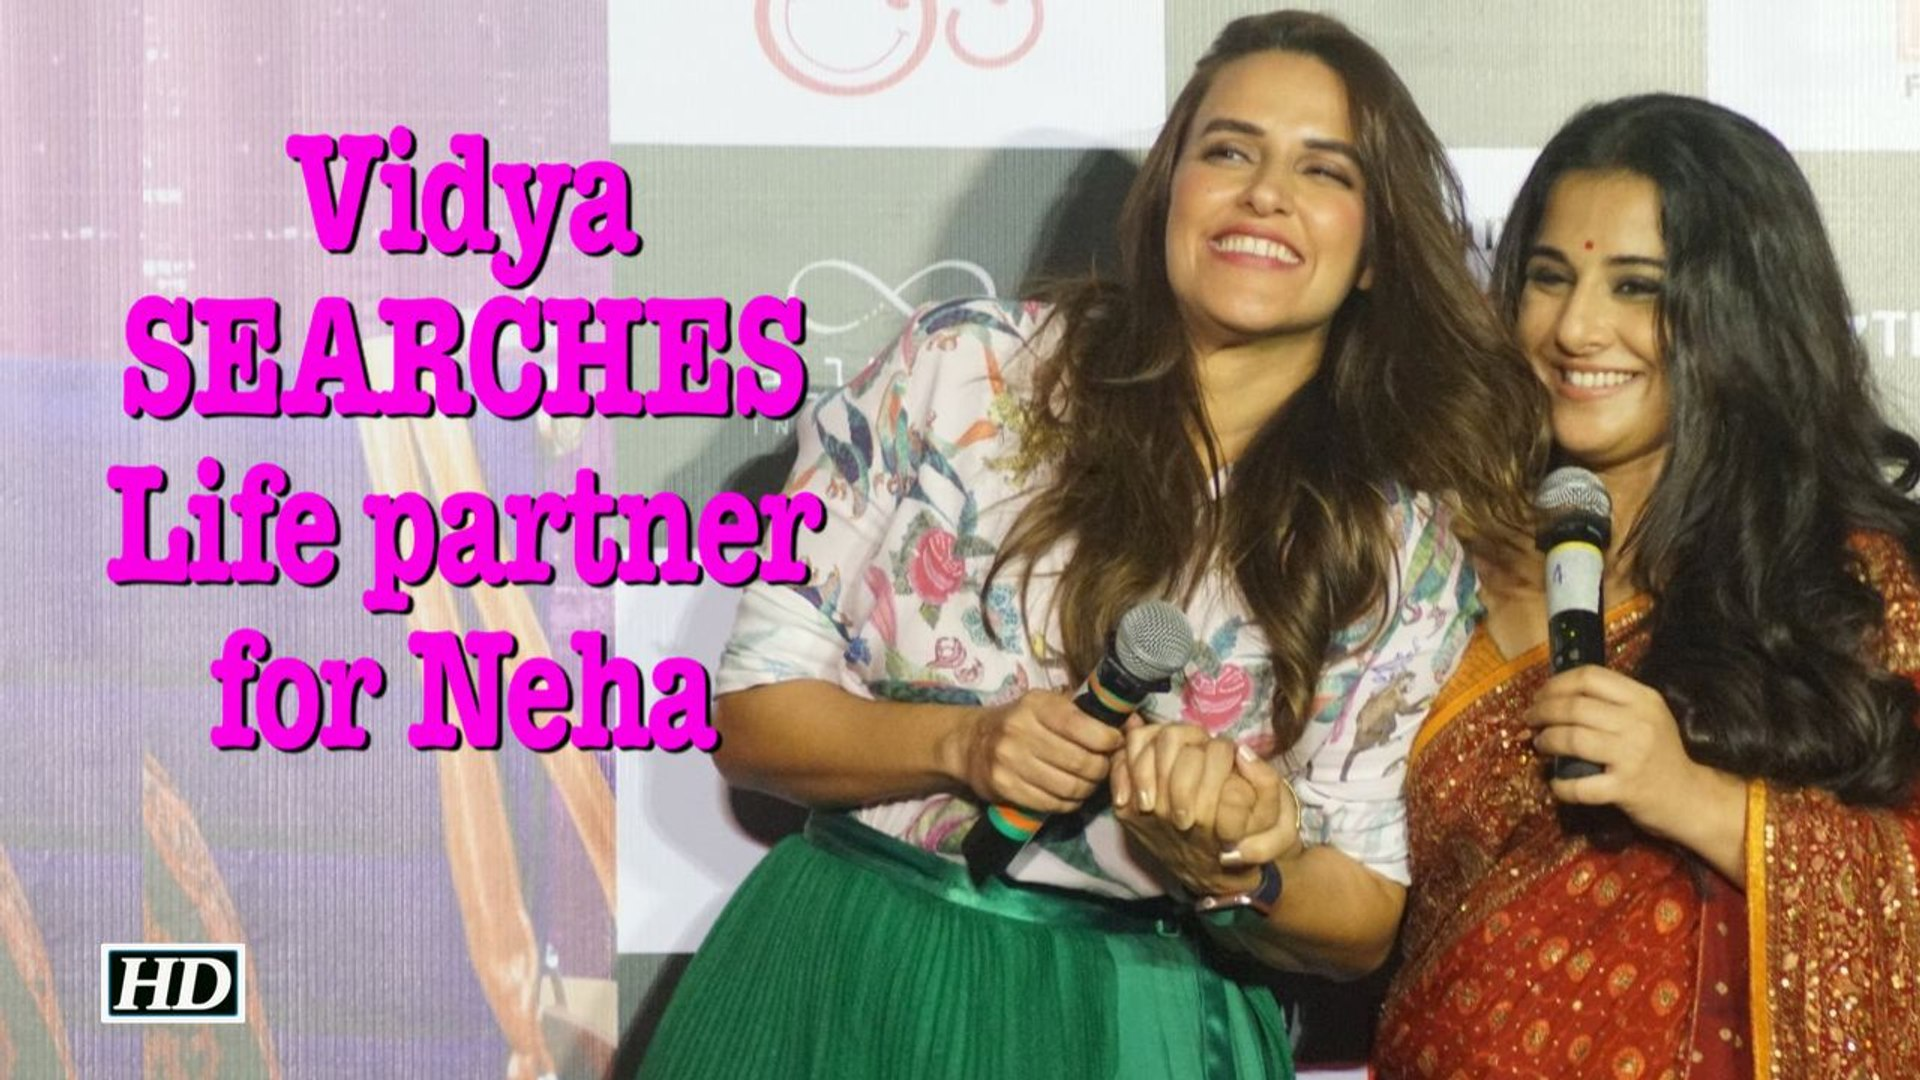 Vidya SEARCHES life partner for Neha, plays a MATCH MAKER